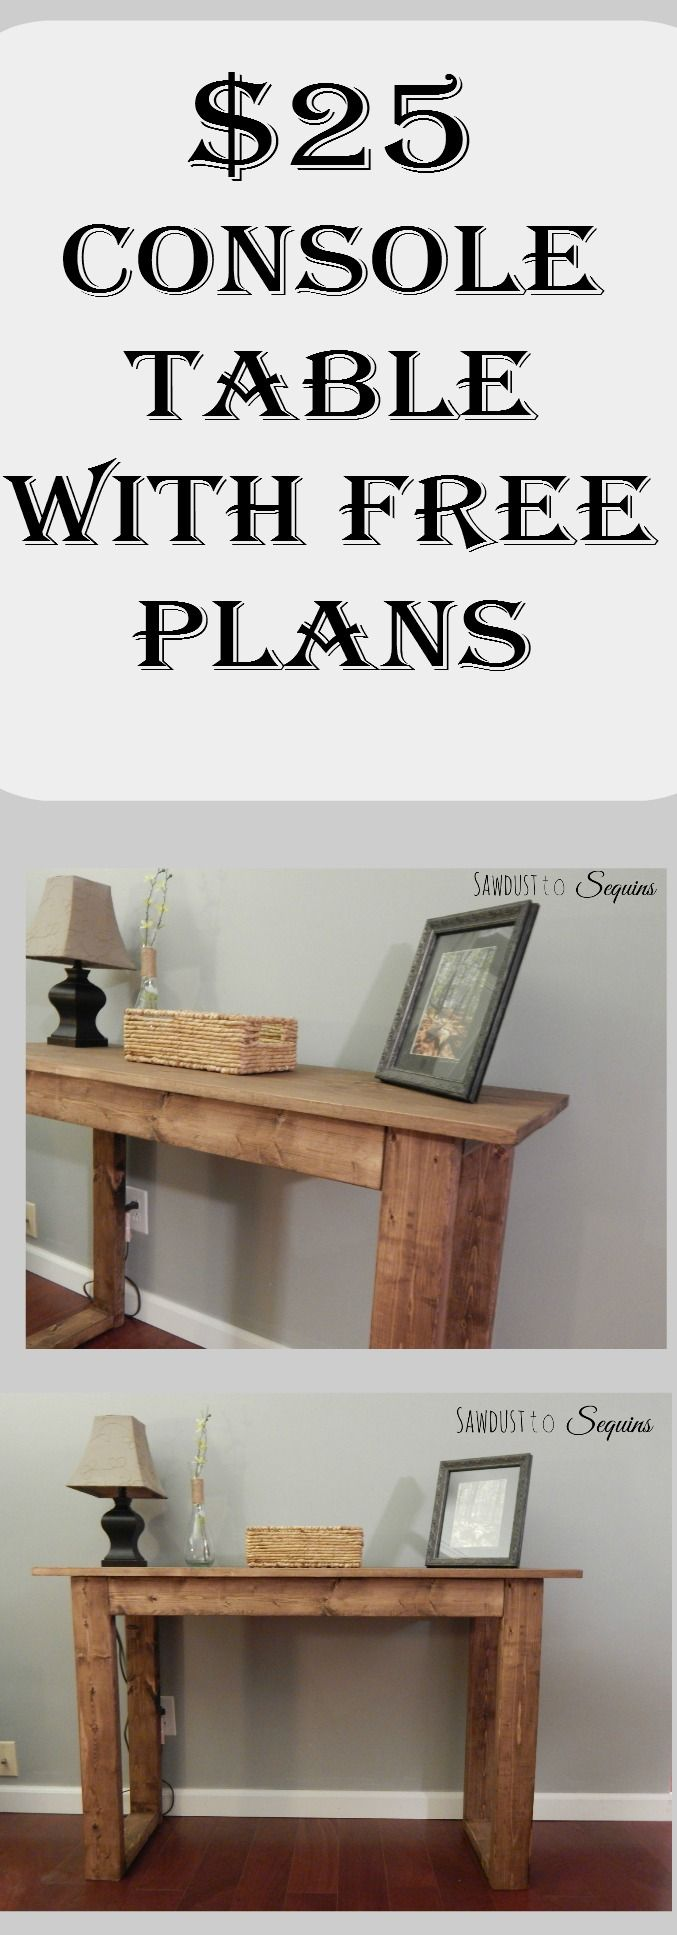 25 Console Table with Free Plans Diy furniture plans